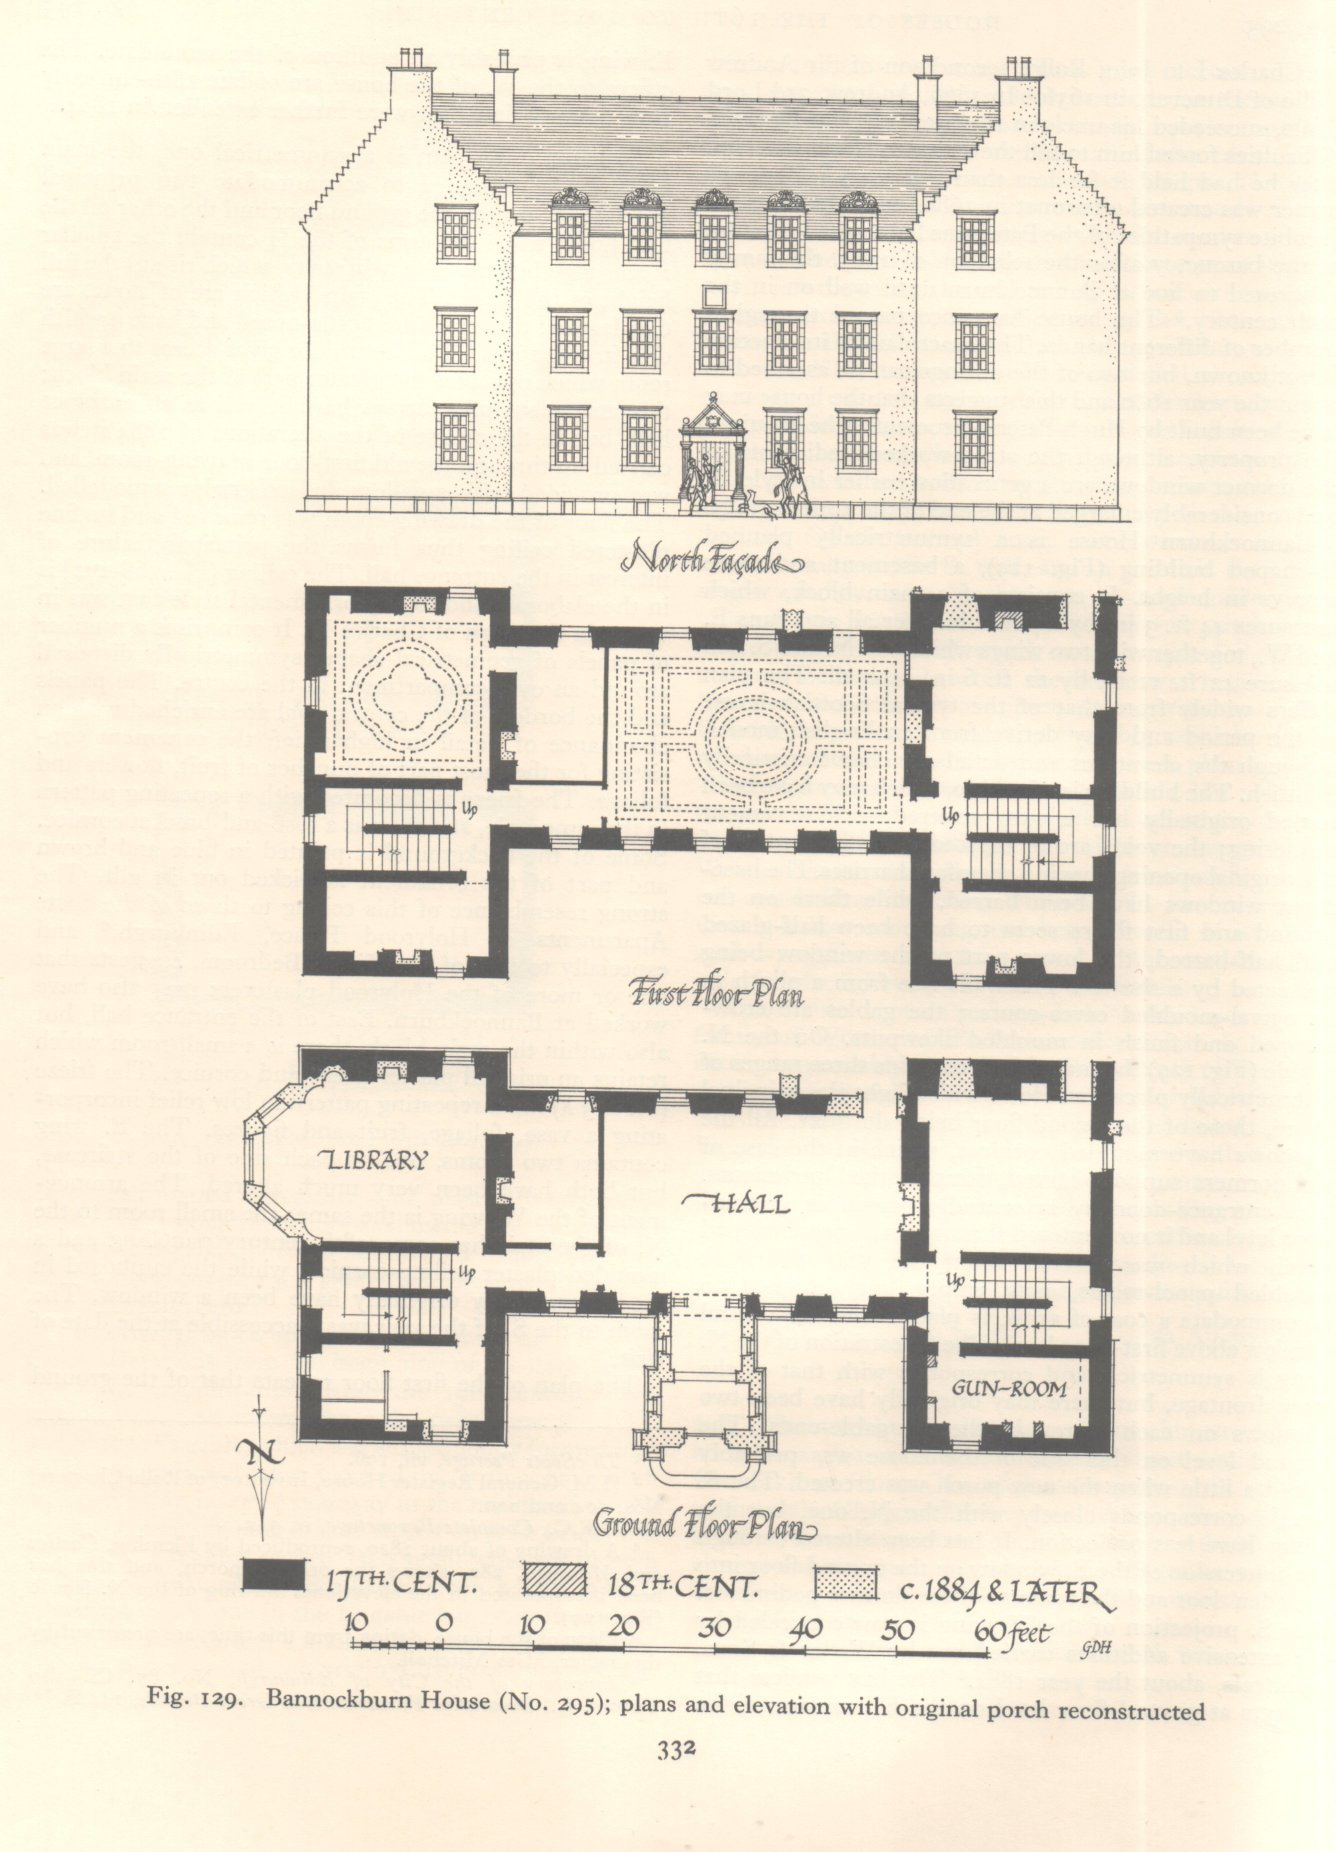 18th century house plans for Century homes floor plans